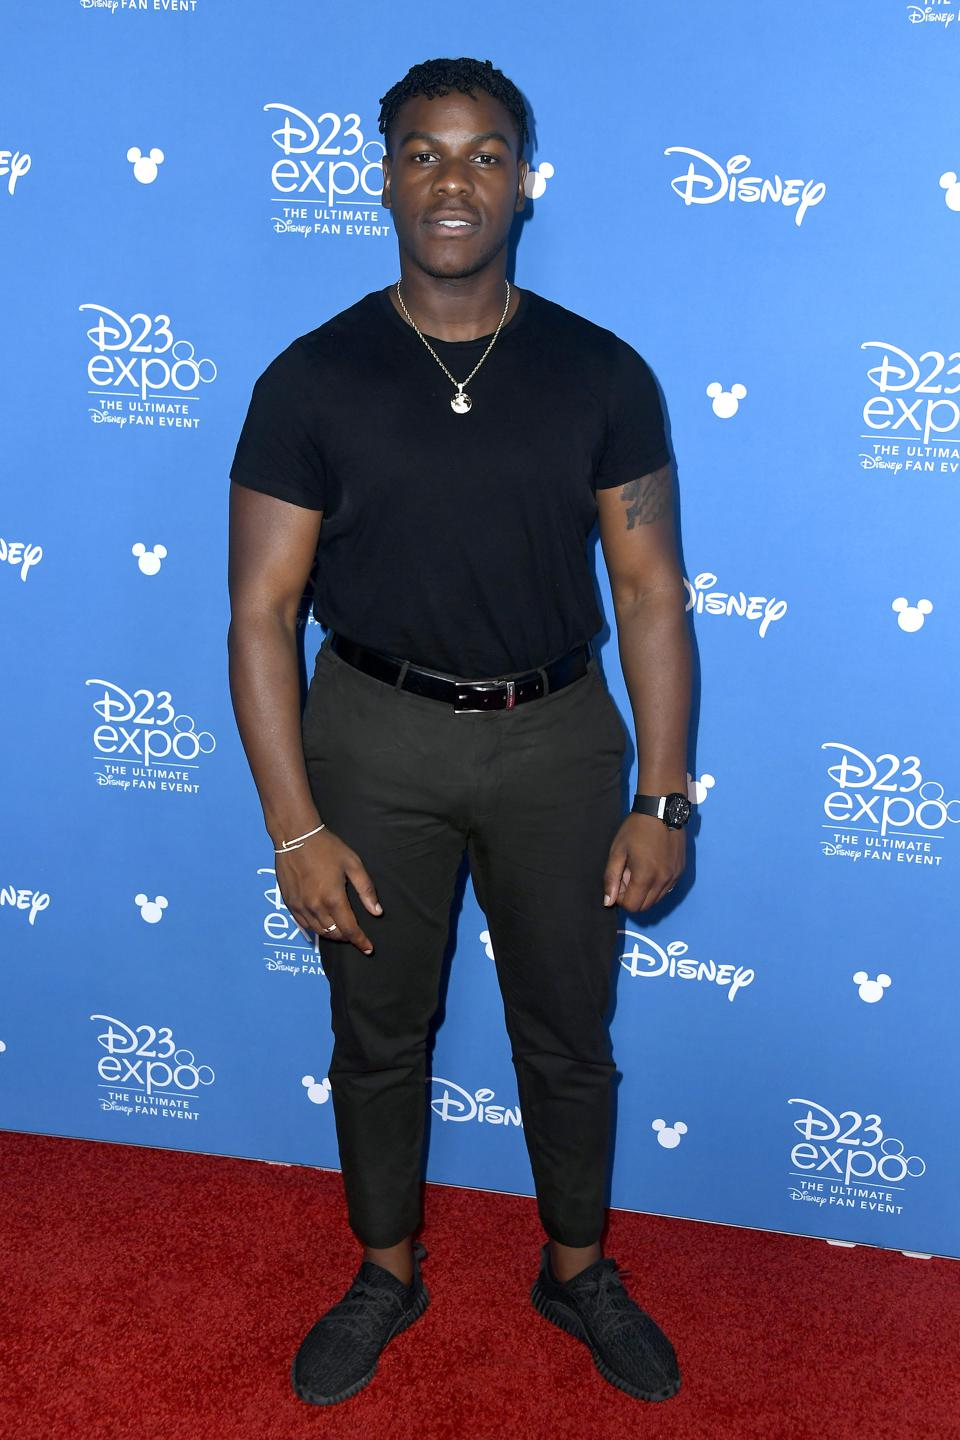 960x0 - Rise Of Skywalkers' John Boyega Should Star In Potentially Epic Boxing Biopic